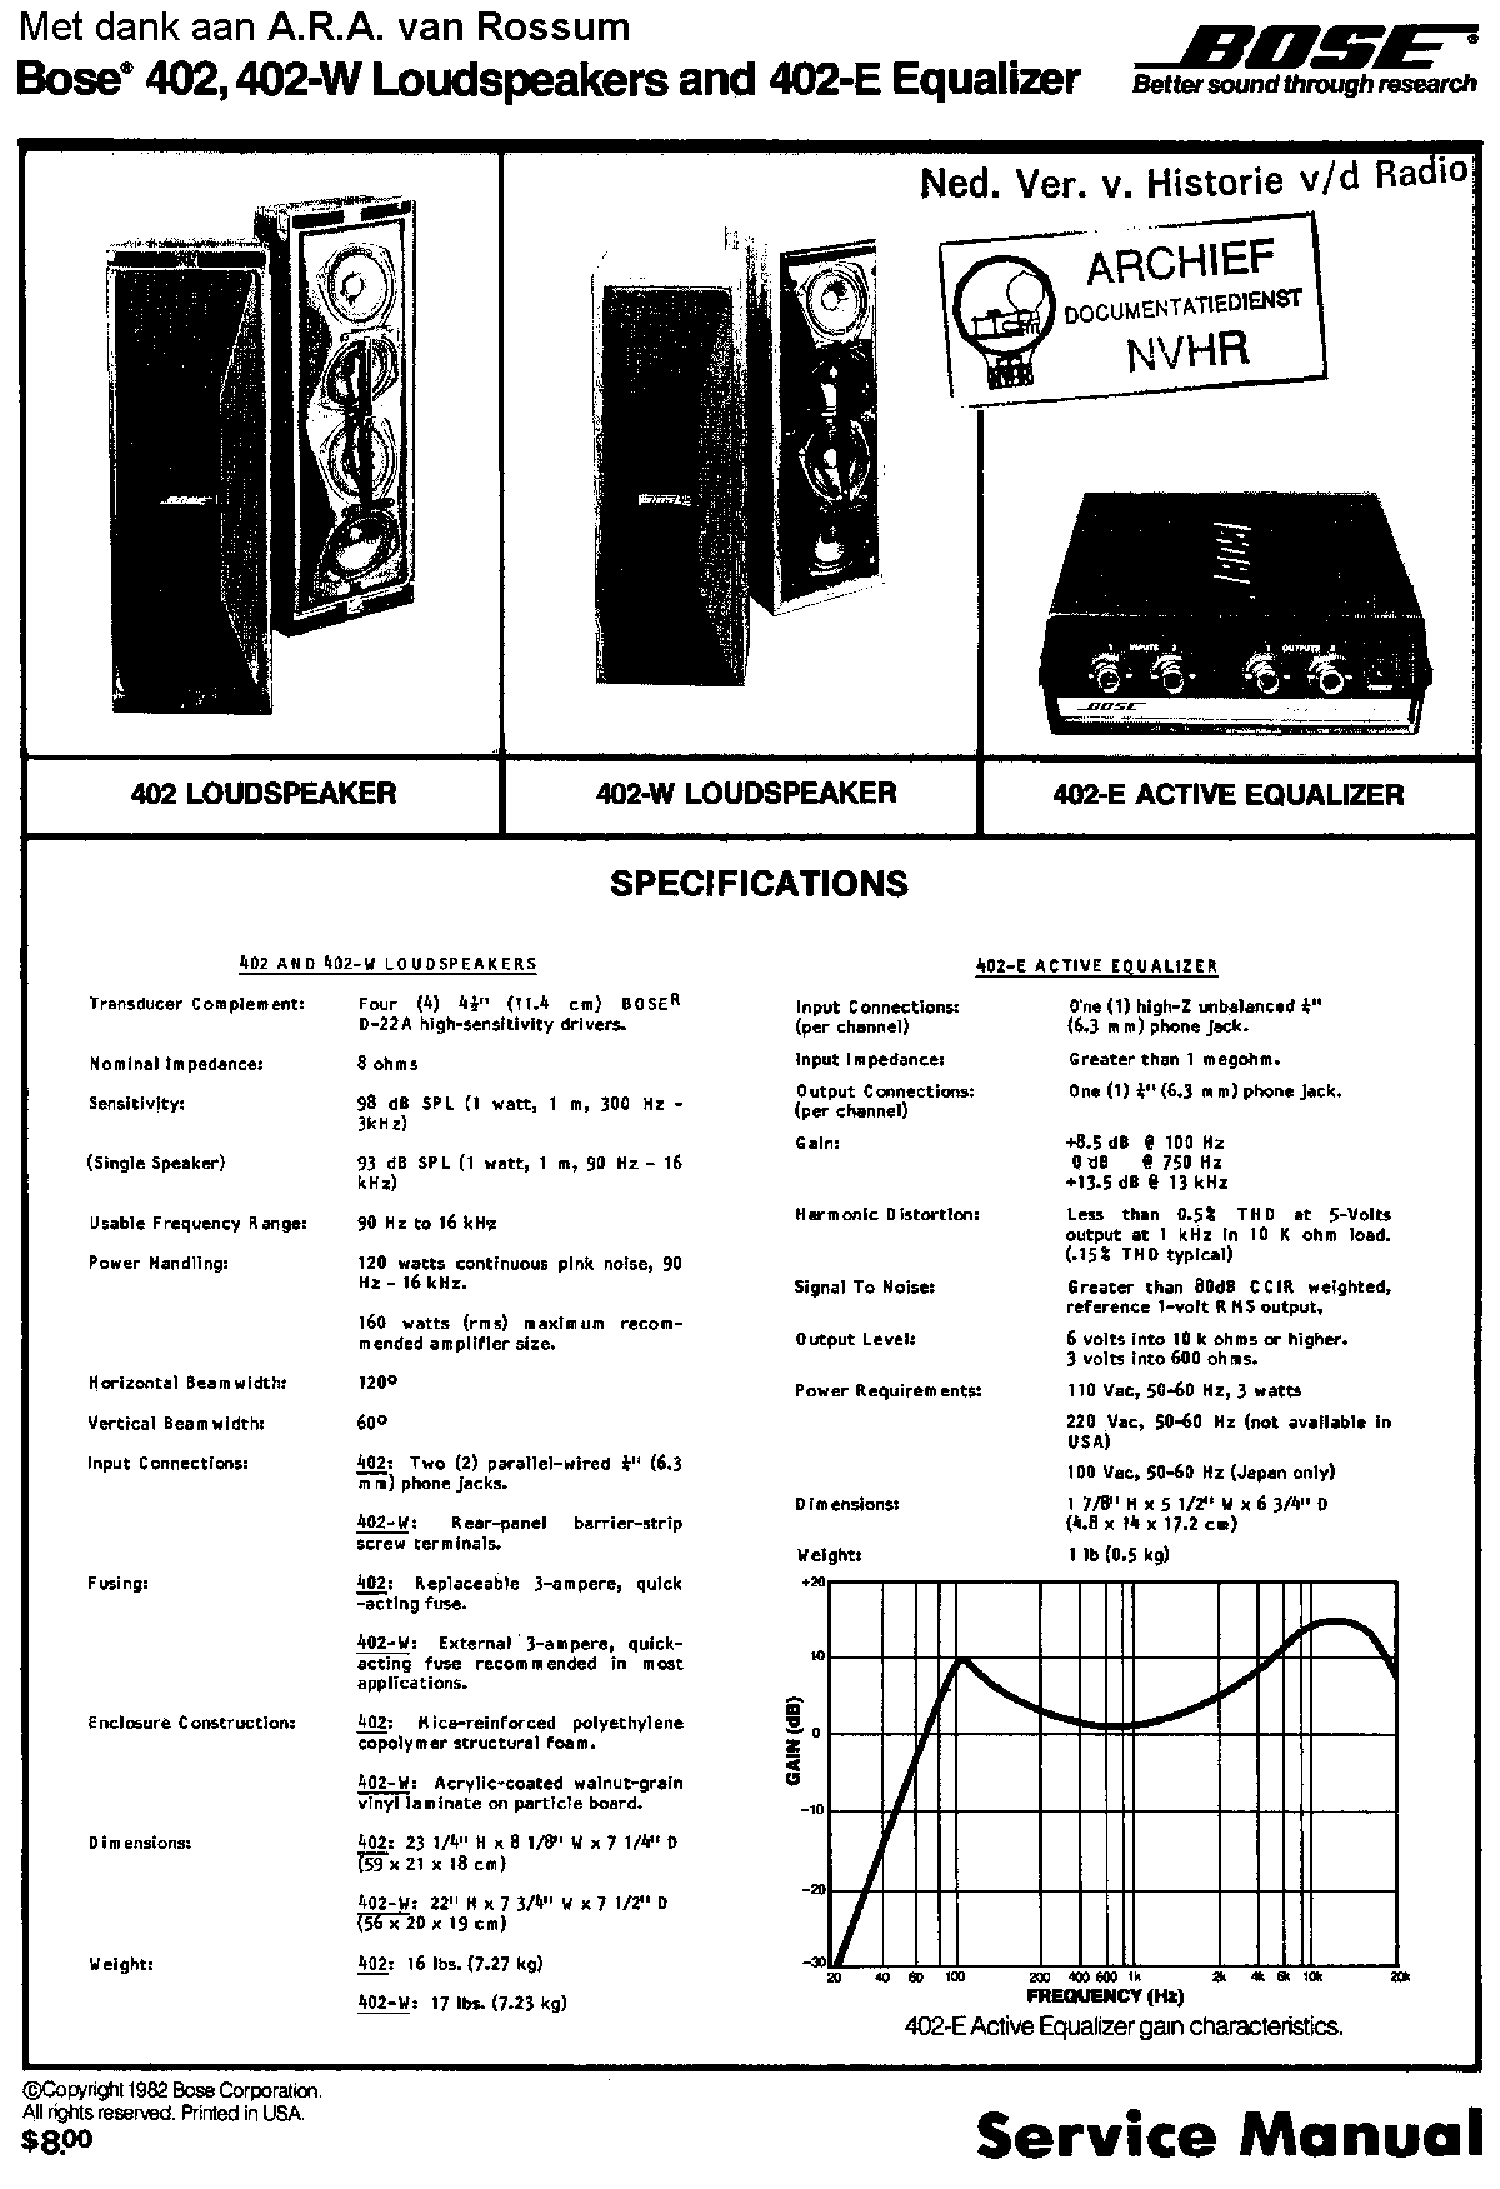 bose 402 e active equalizer manual